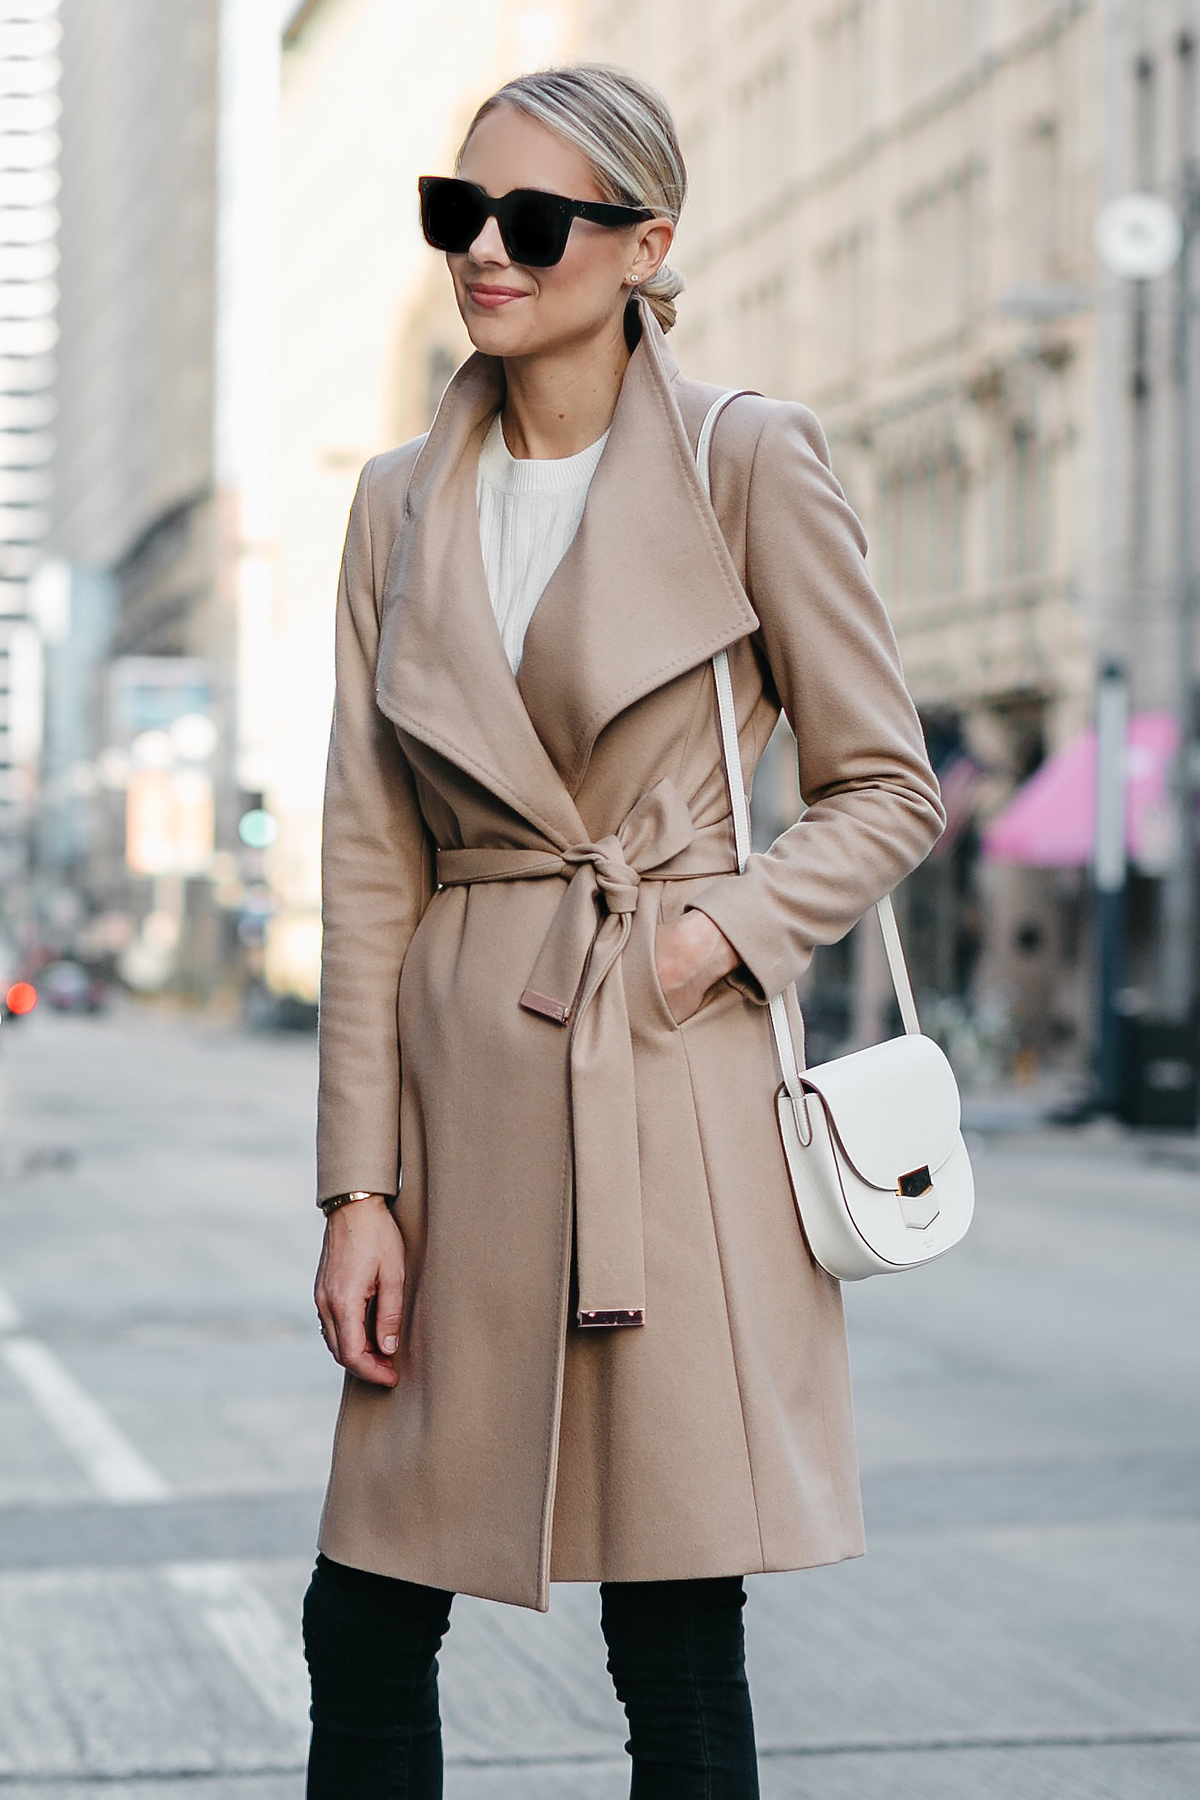 Blonde Woman Wearing Tan Wrap Coat Black Skinny Jeans Celine White Trotteur Handbag Fashion Jackson Dallas Blogger Fashion Blogger Street Style